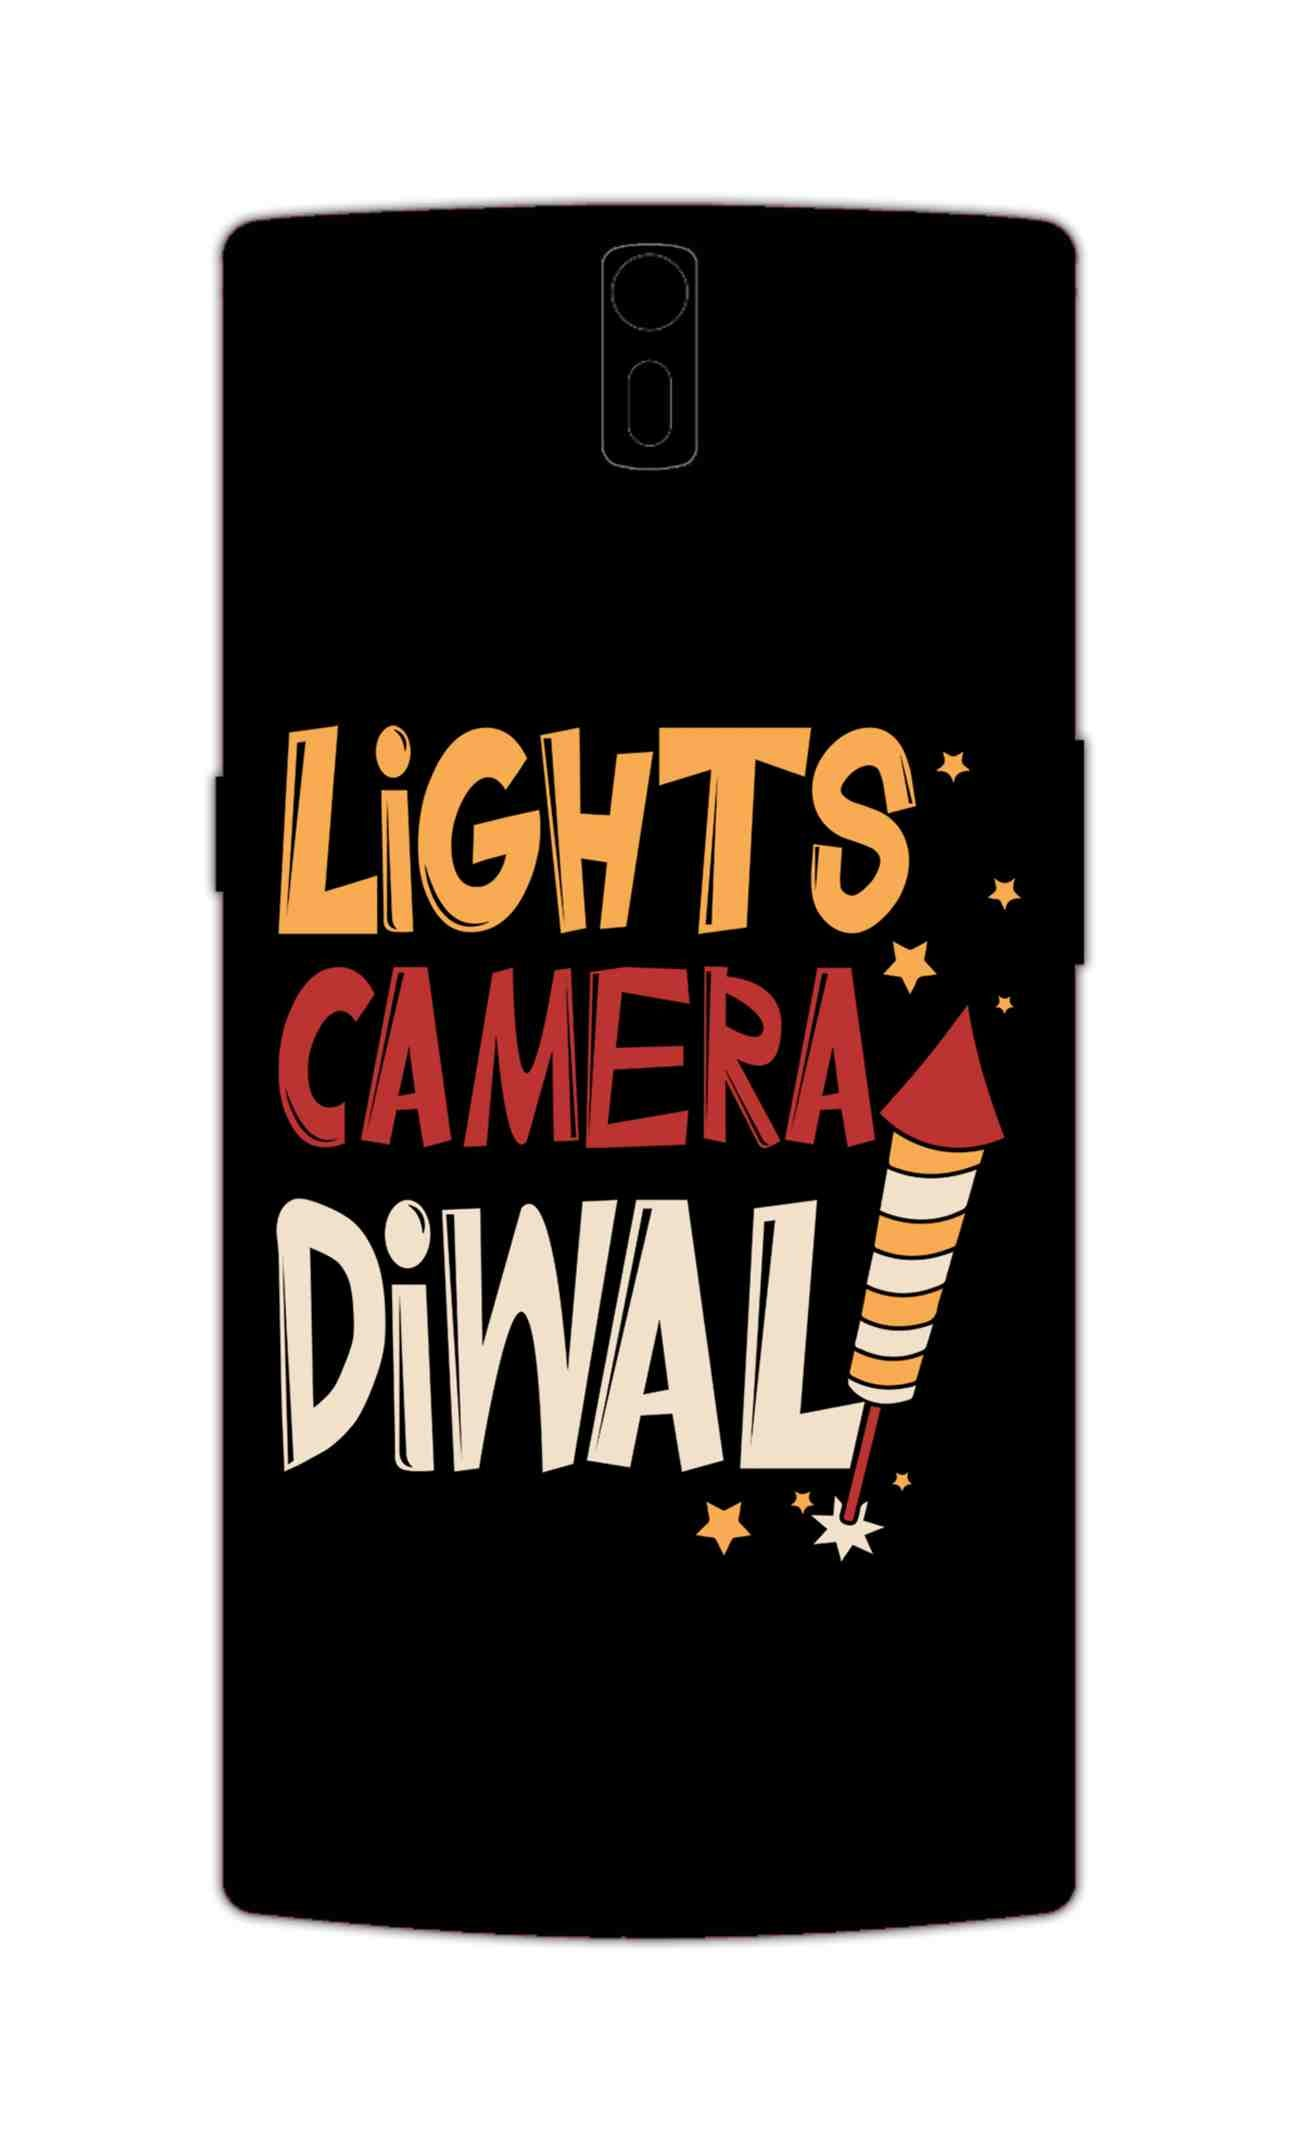 Lights Camera Diwali Enjoy Festival Of Light OnePlus 1 Mobile Cover Case - MADANYU